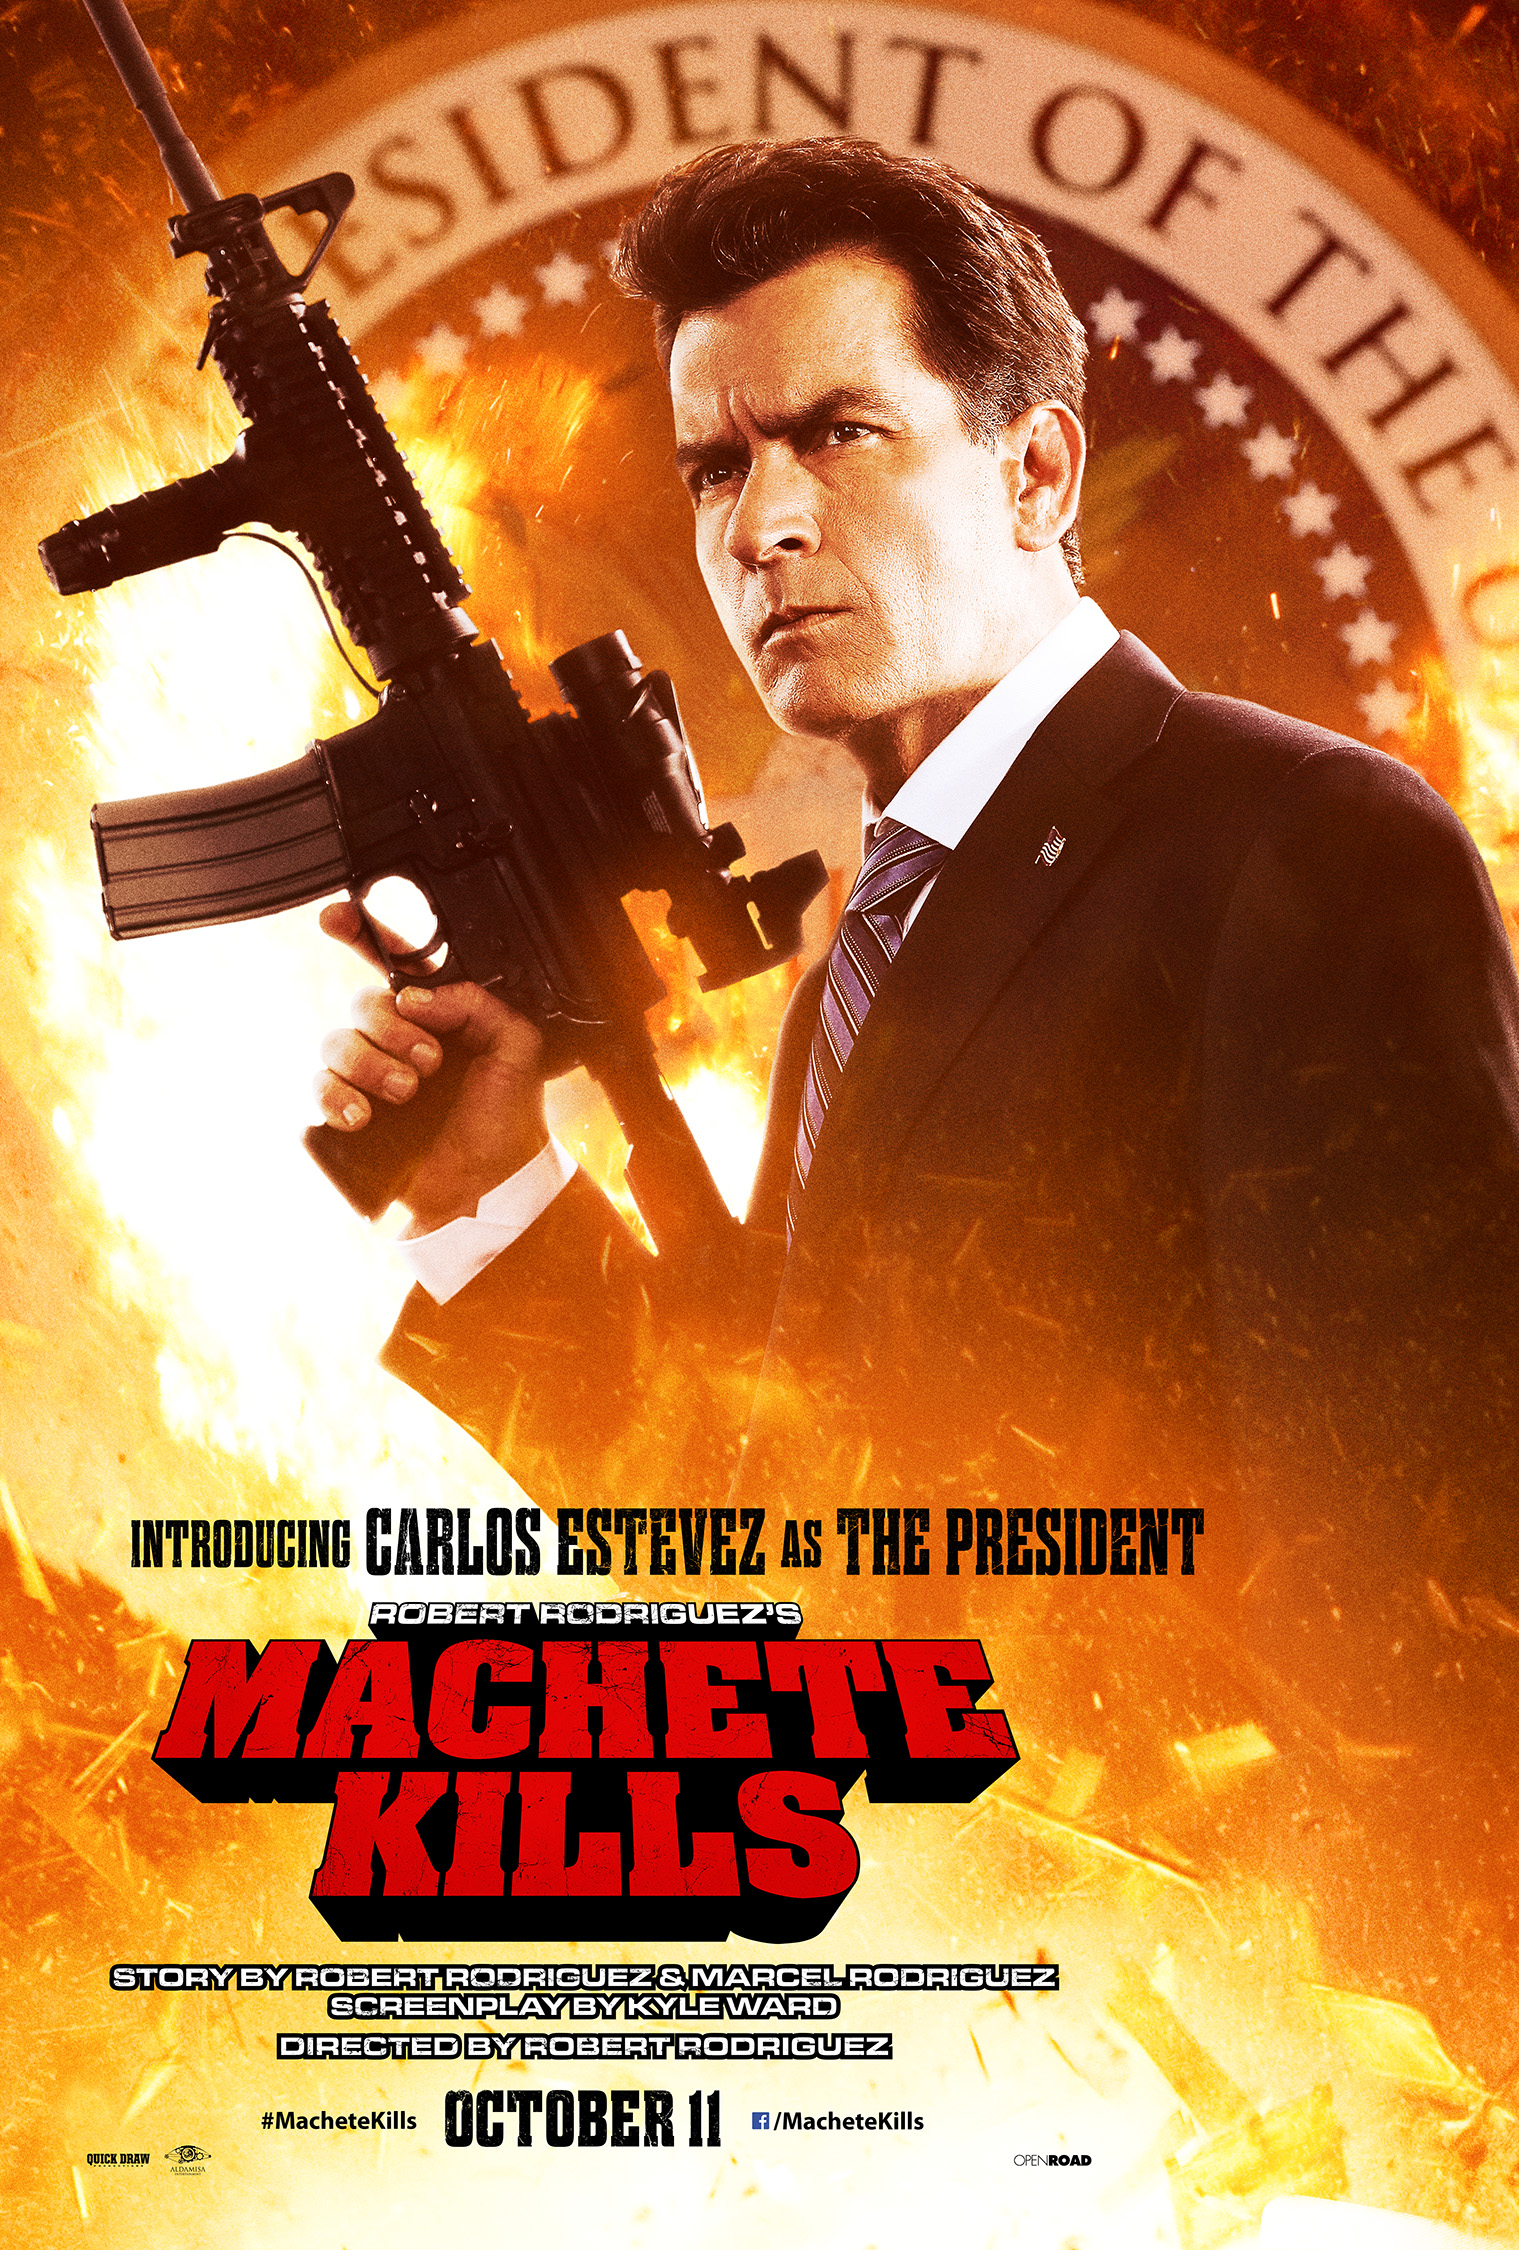 machete kills MC2 CHARLIE Final v027 oct11 rgb Machete Kills His Co Stars In New Official Posters and Stills